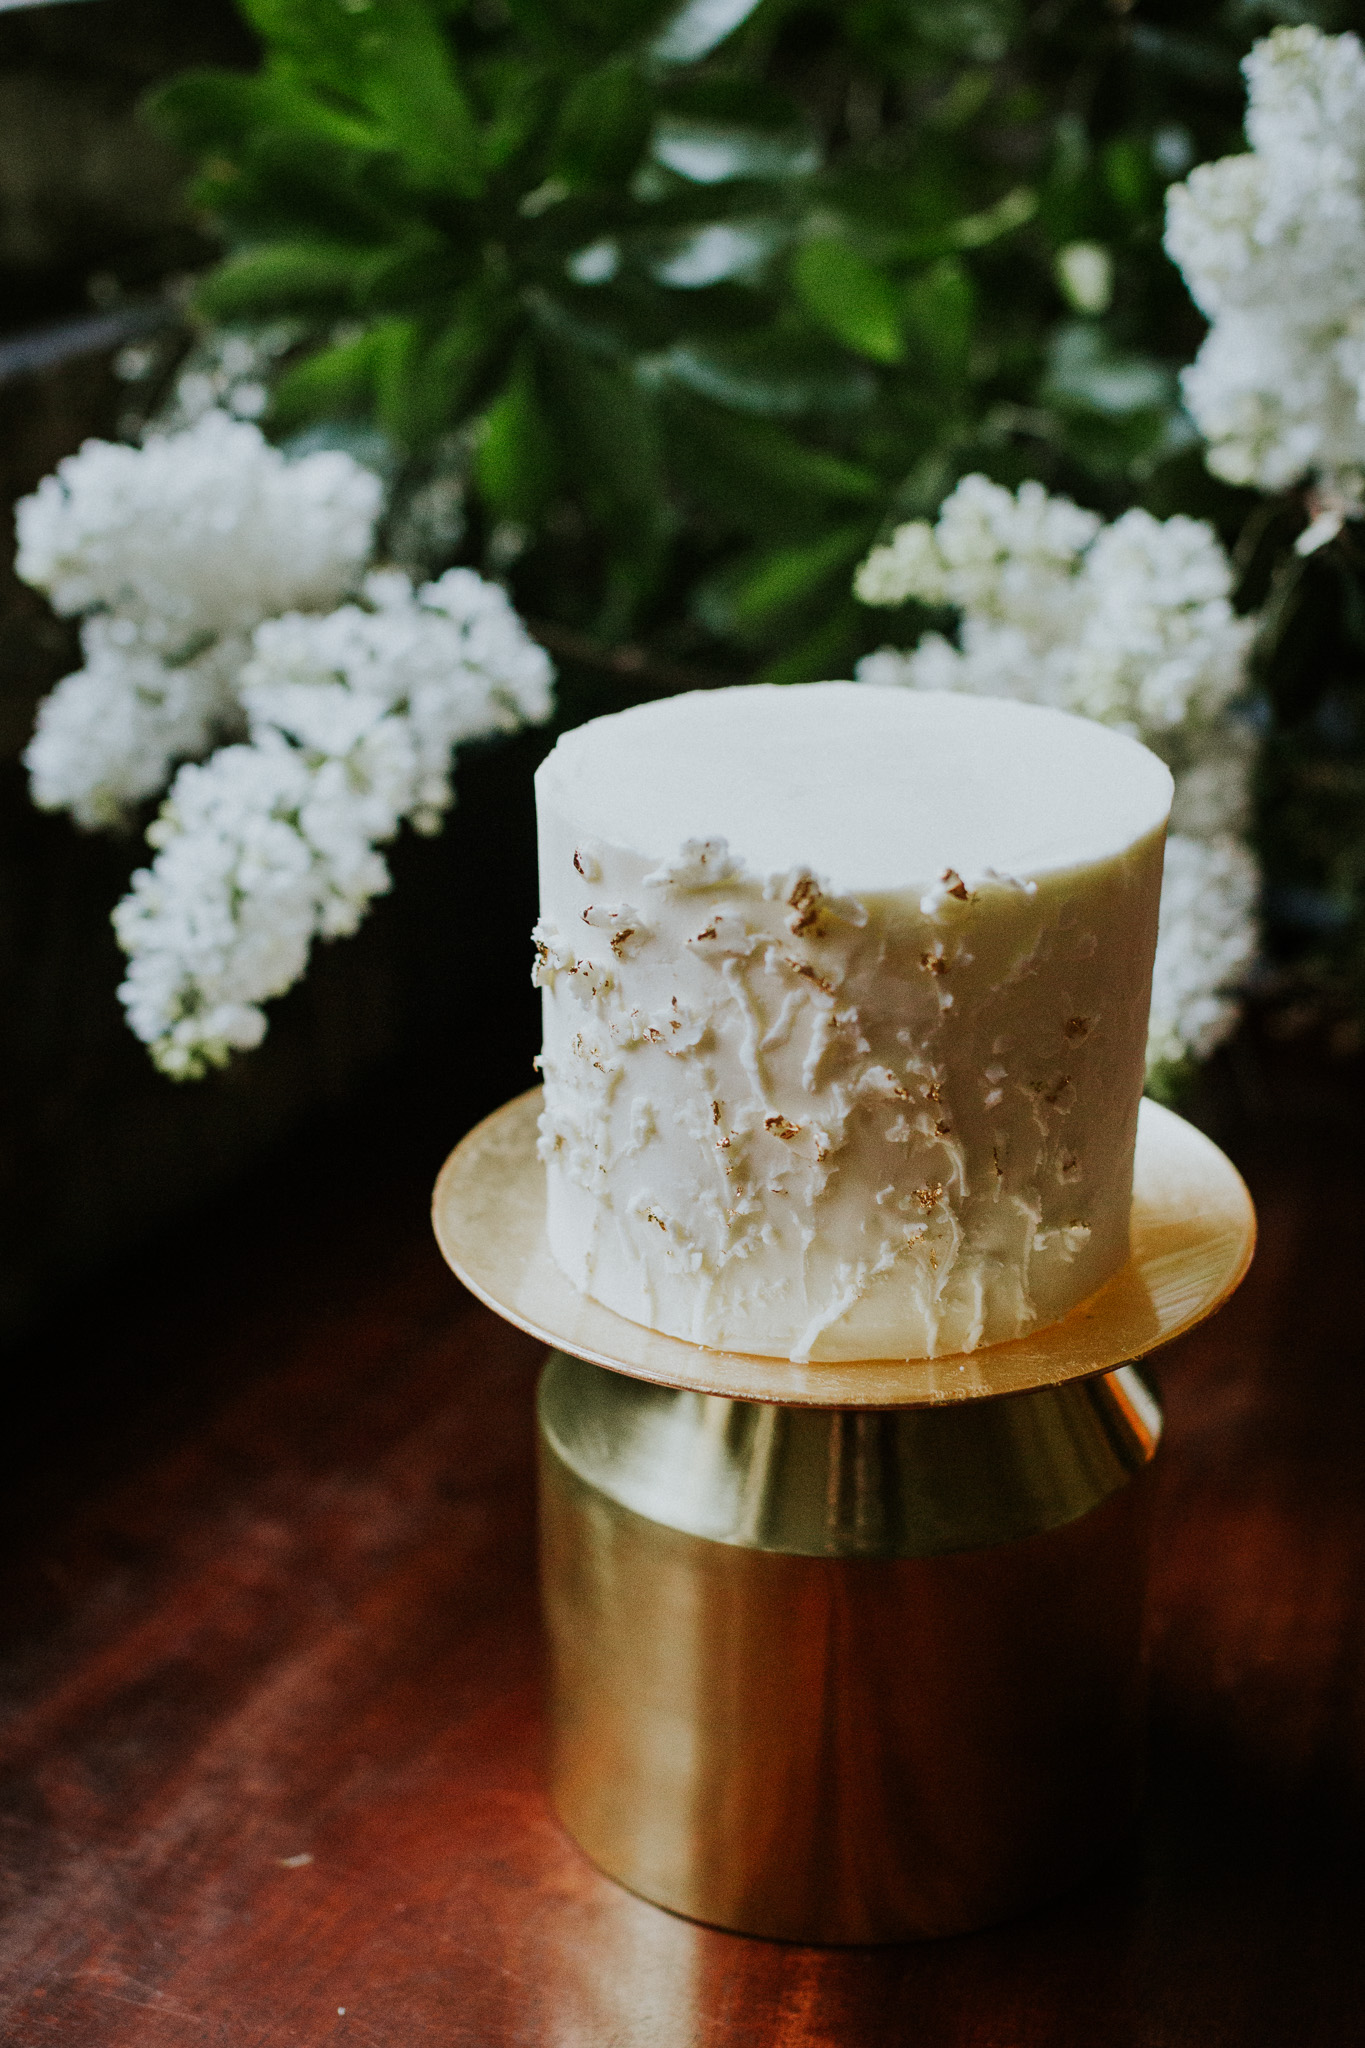 Bas-relief sculptured buttercream wedding cake with natural, organic floral details. Photo by Maja Tsolo